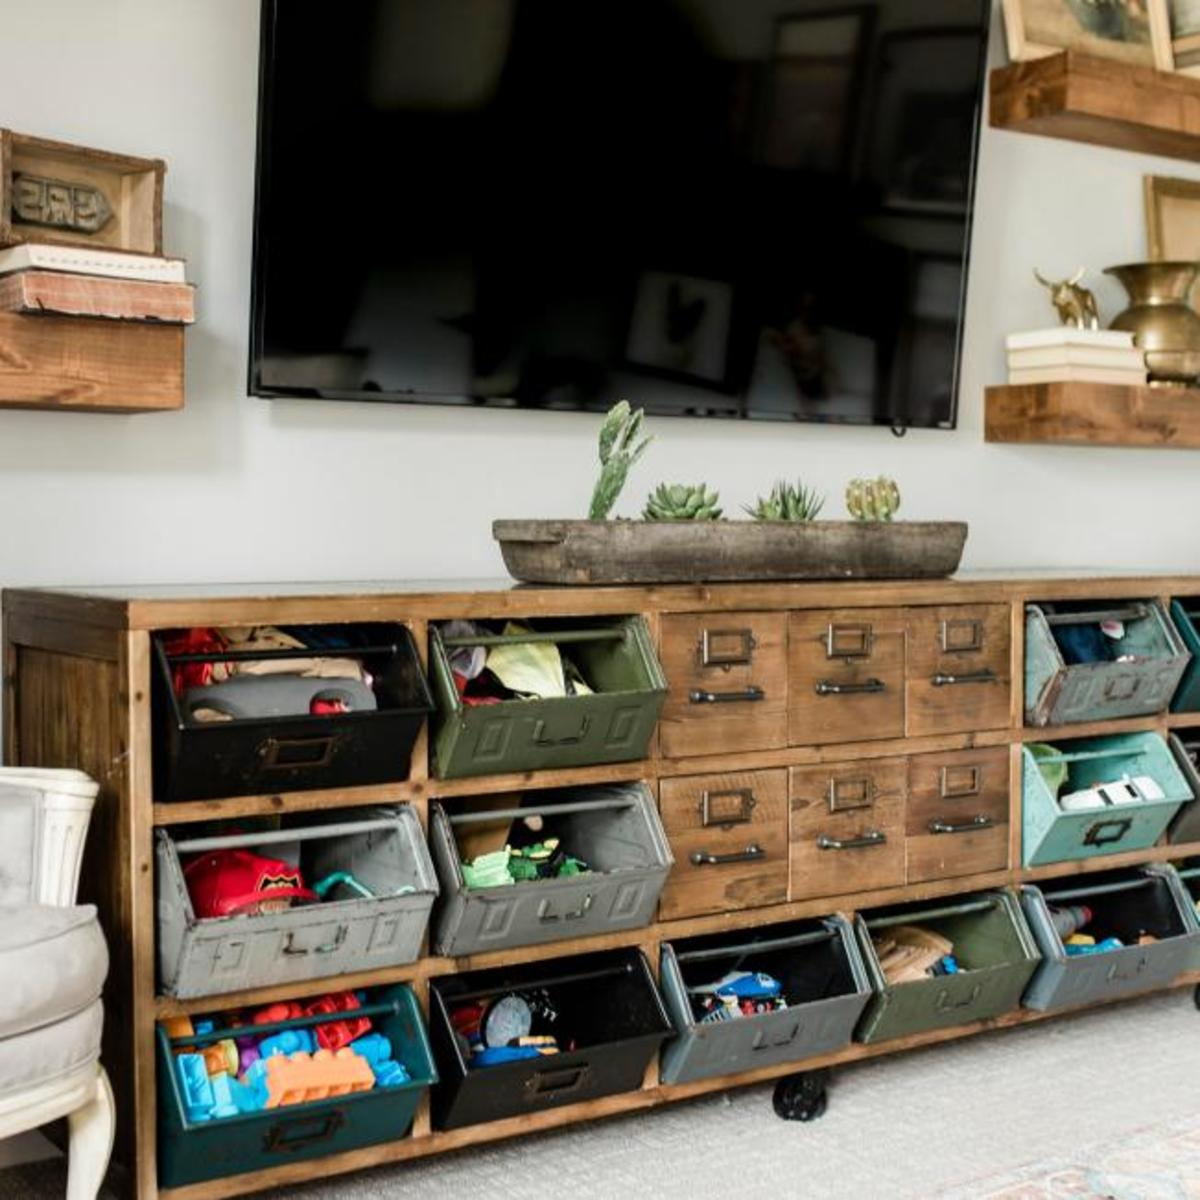 An vintage toys made with distressed wooden and metal bins.